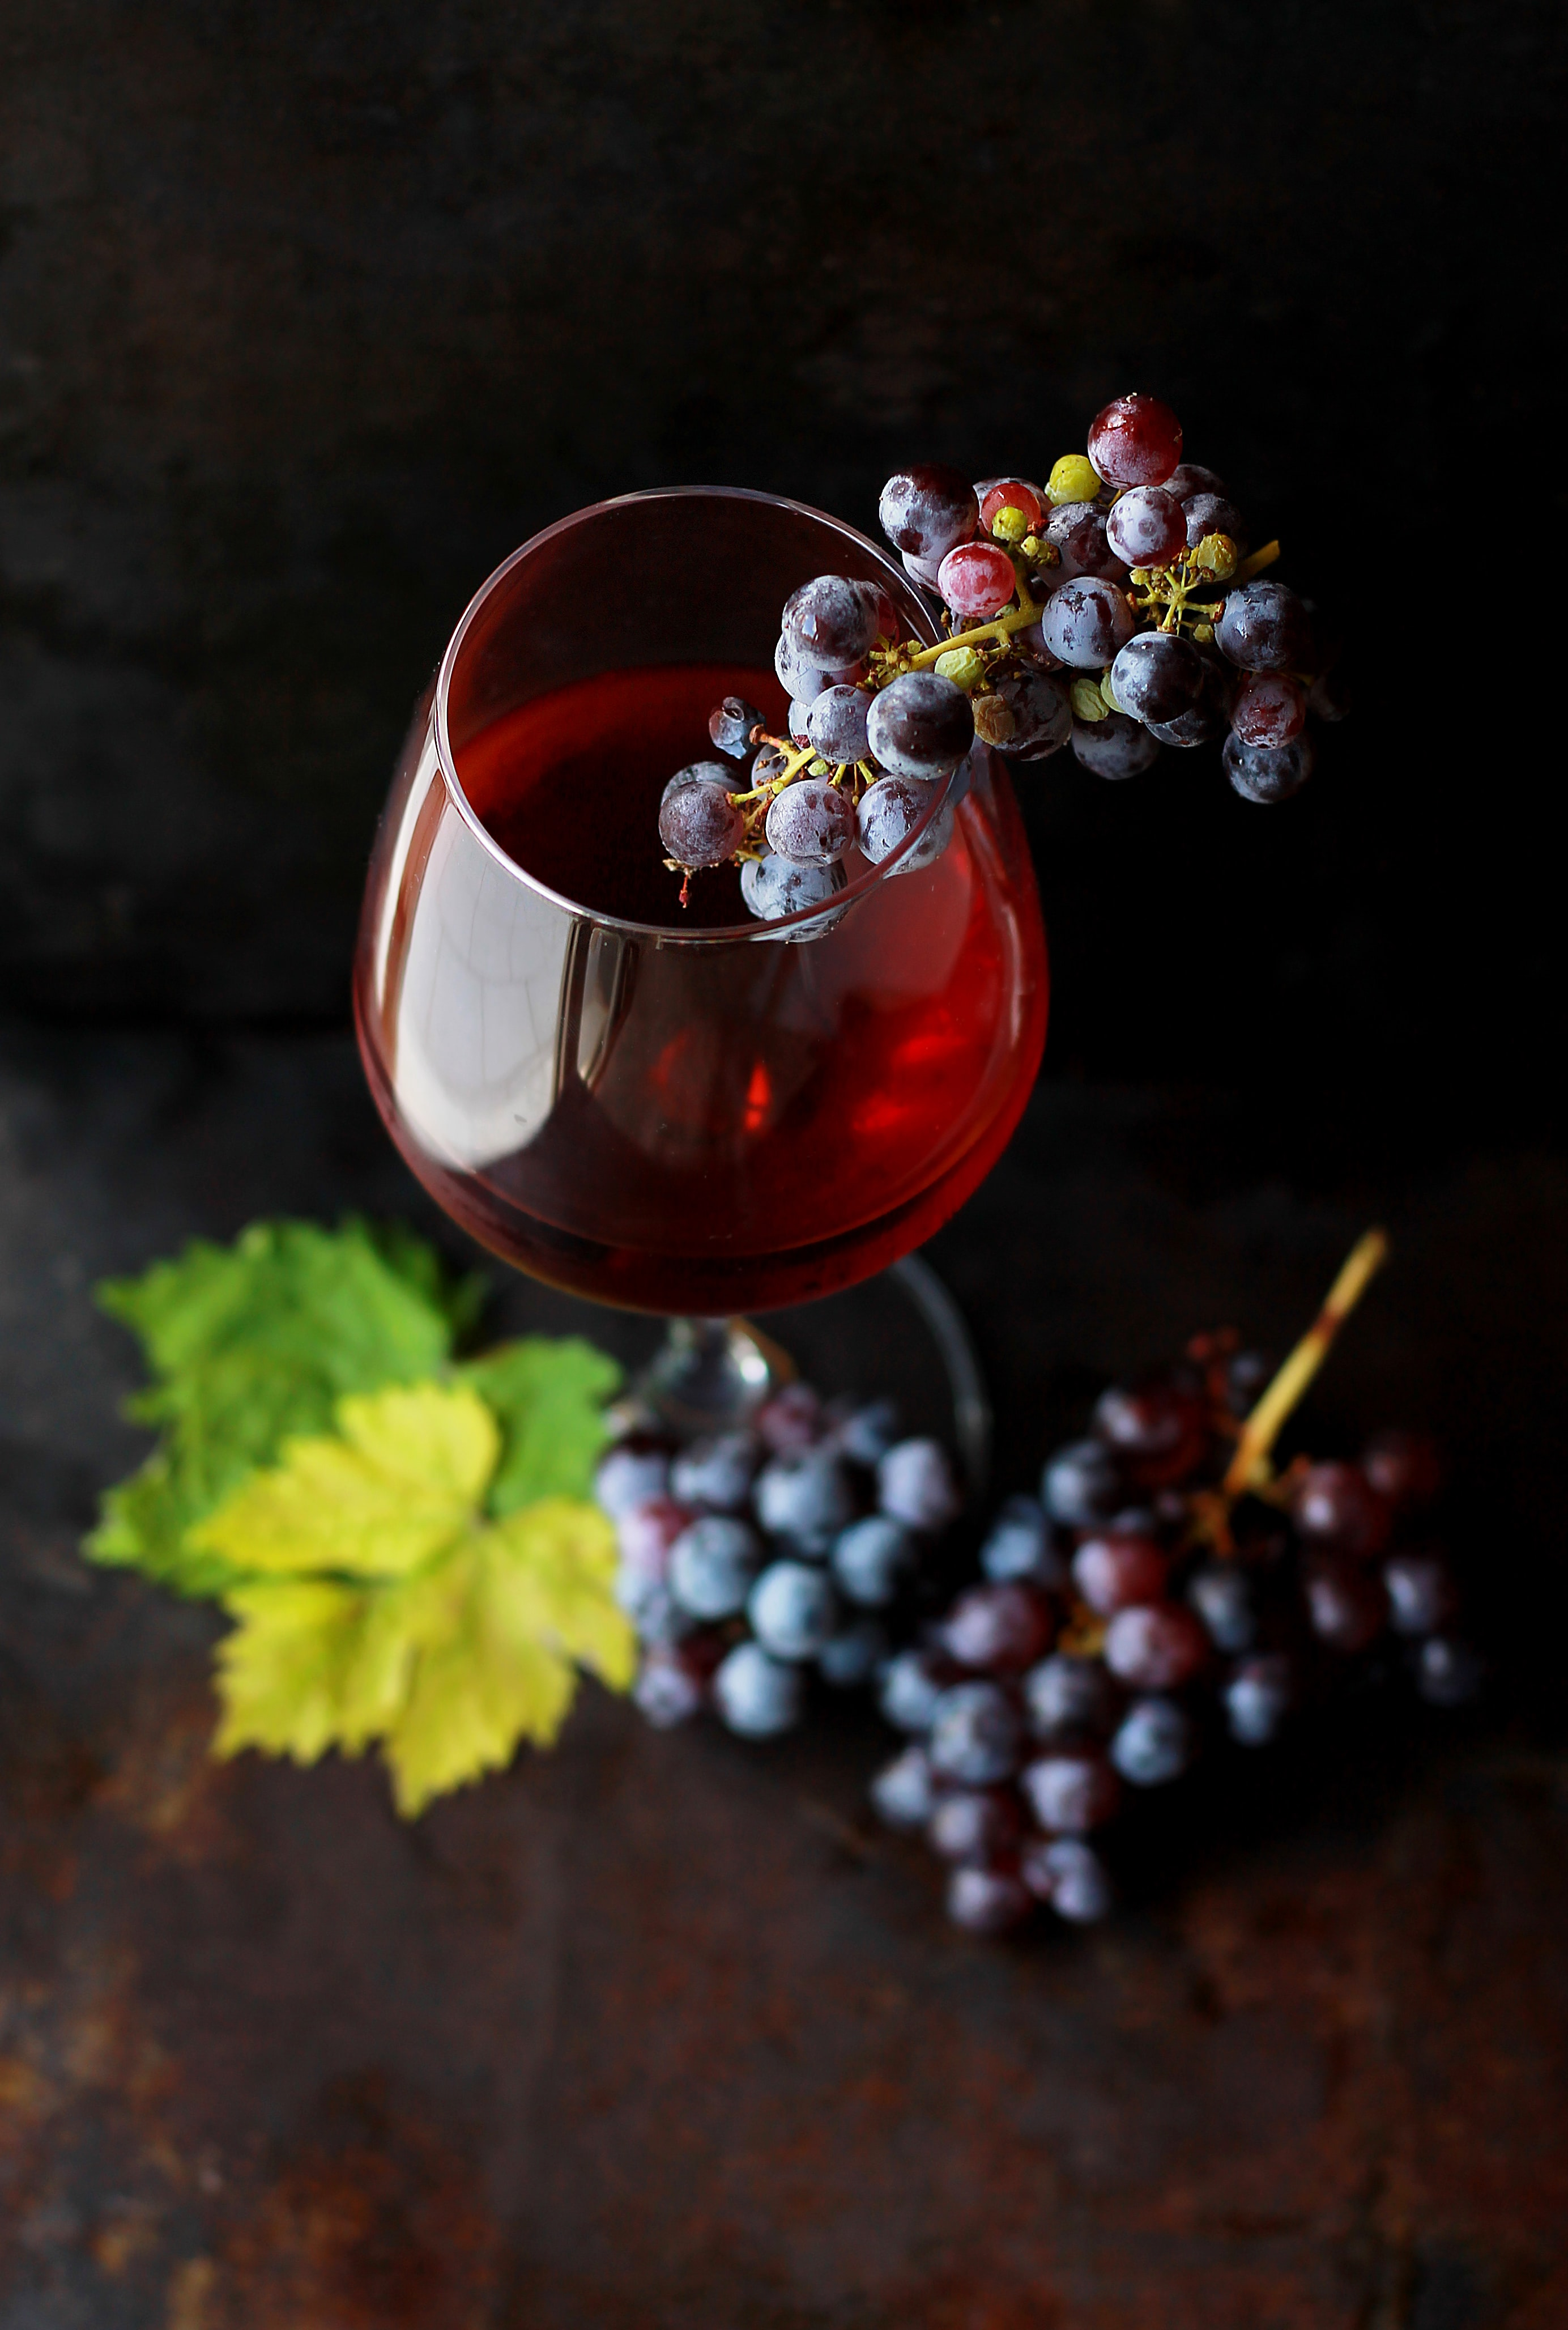 Macro view of a wine glass containing alcoholic wine with a bunch of grapes